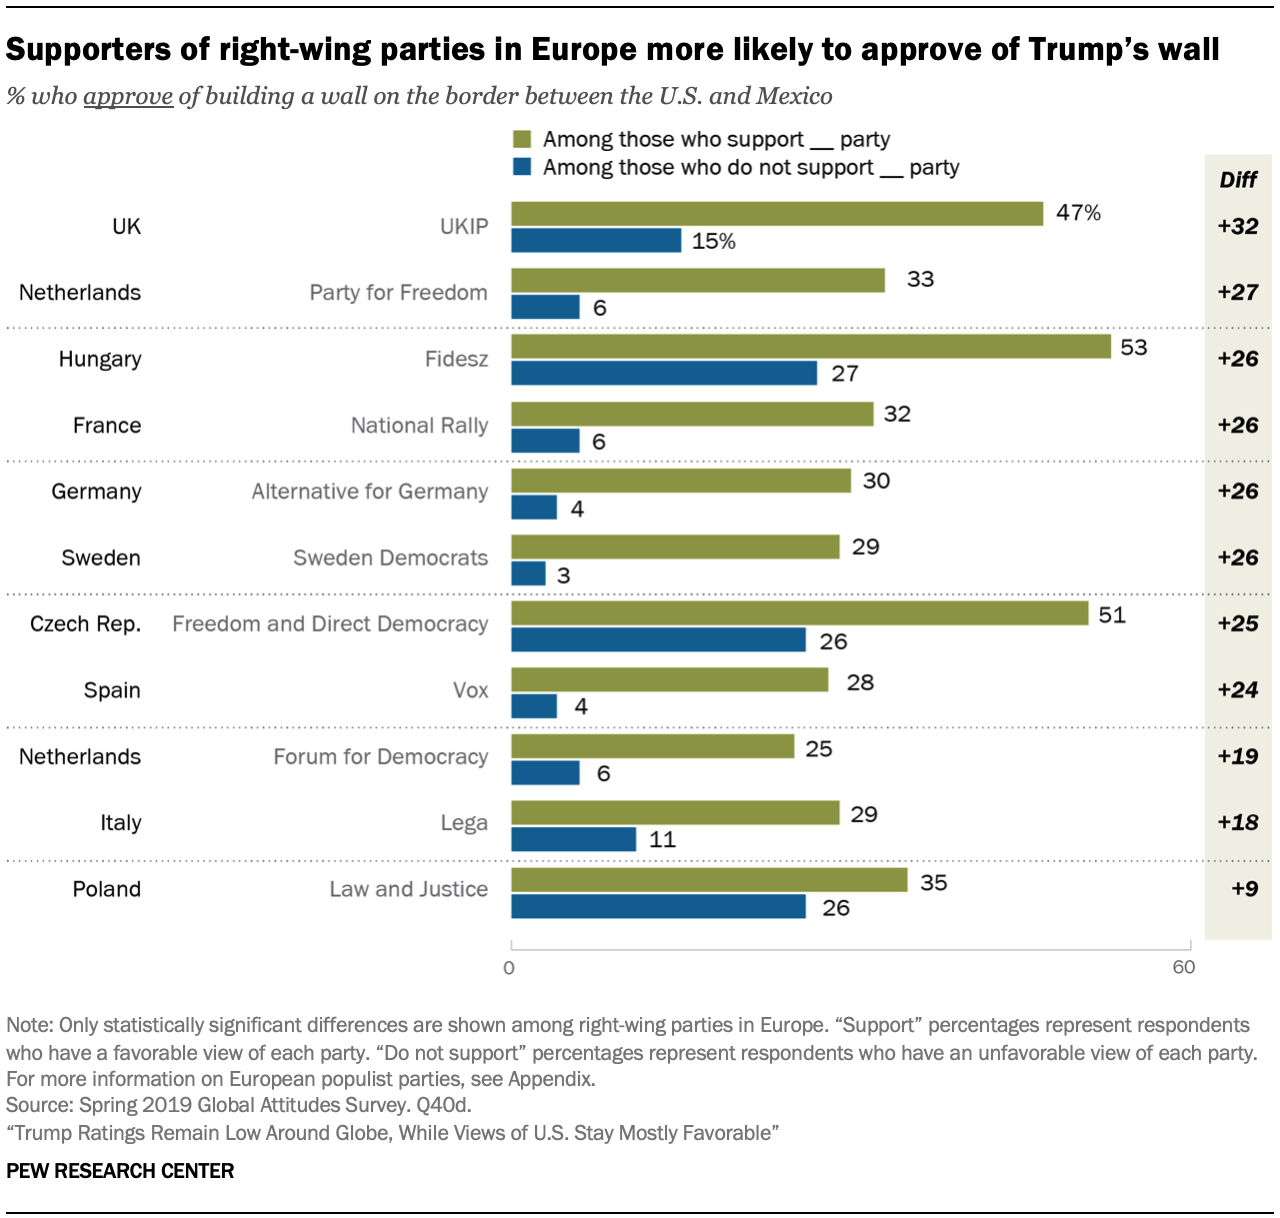 Supporters of right-wing parties in Europe more likely to approve of Trump's wall